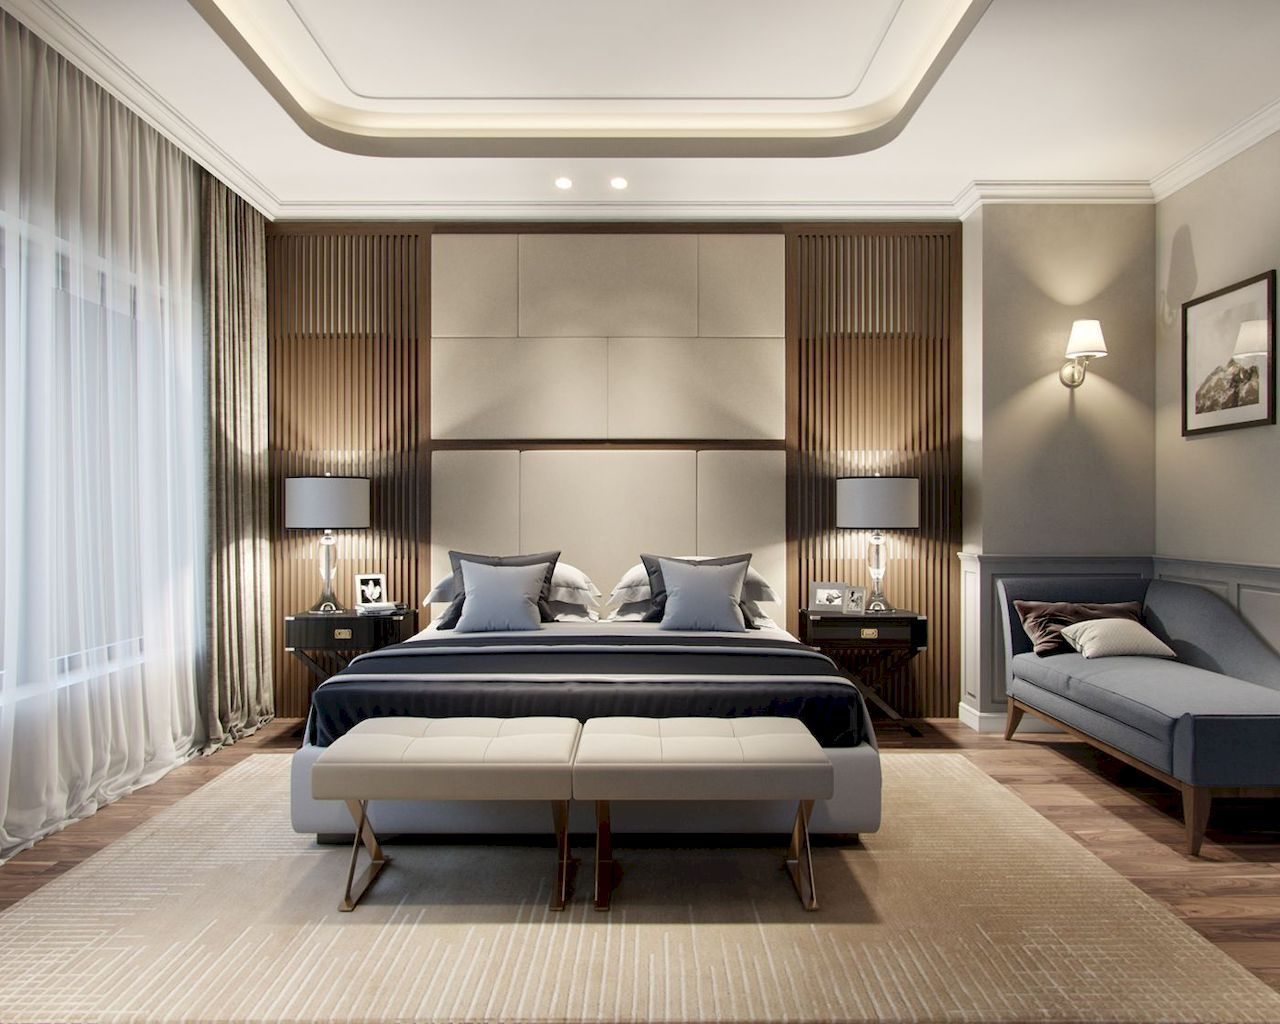 Bedroom Interior Design Ideas, Trends and Solutions 2020. Slatted shading wall for lamps and masculine dark bed with an ottoman